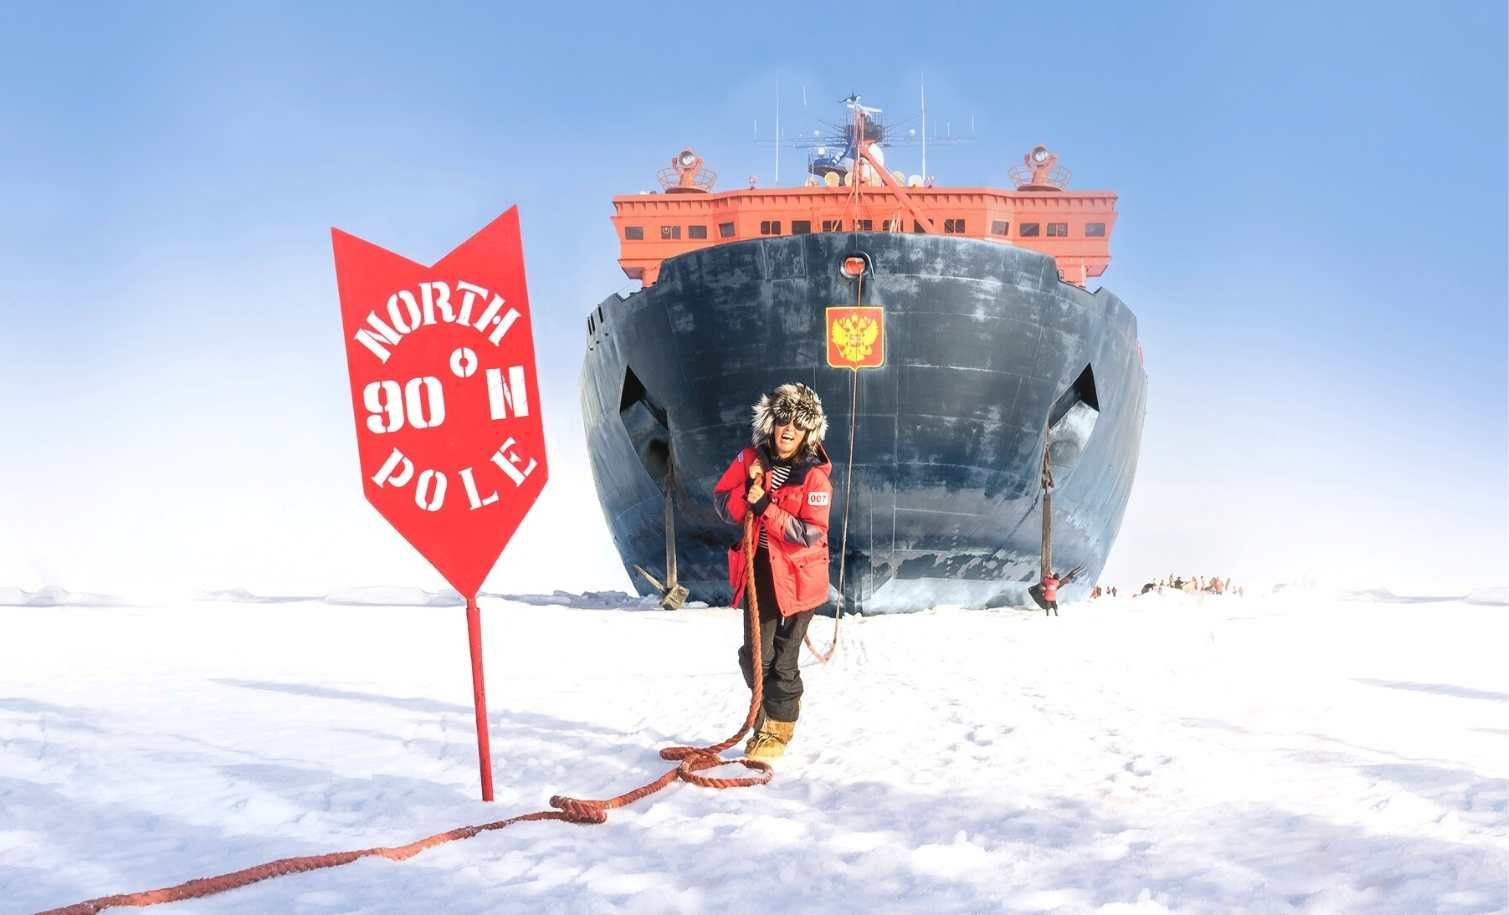 North Pole Expeditions